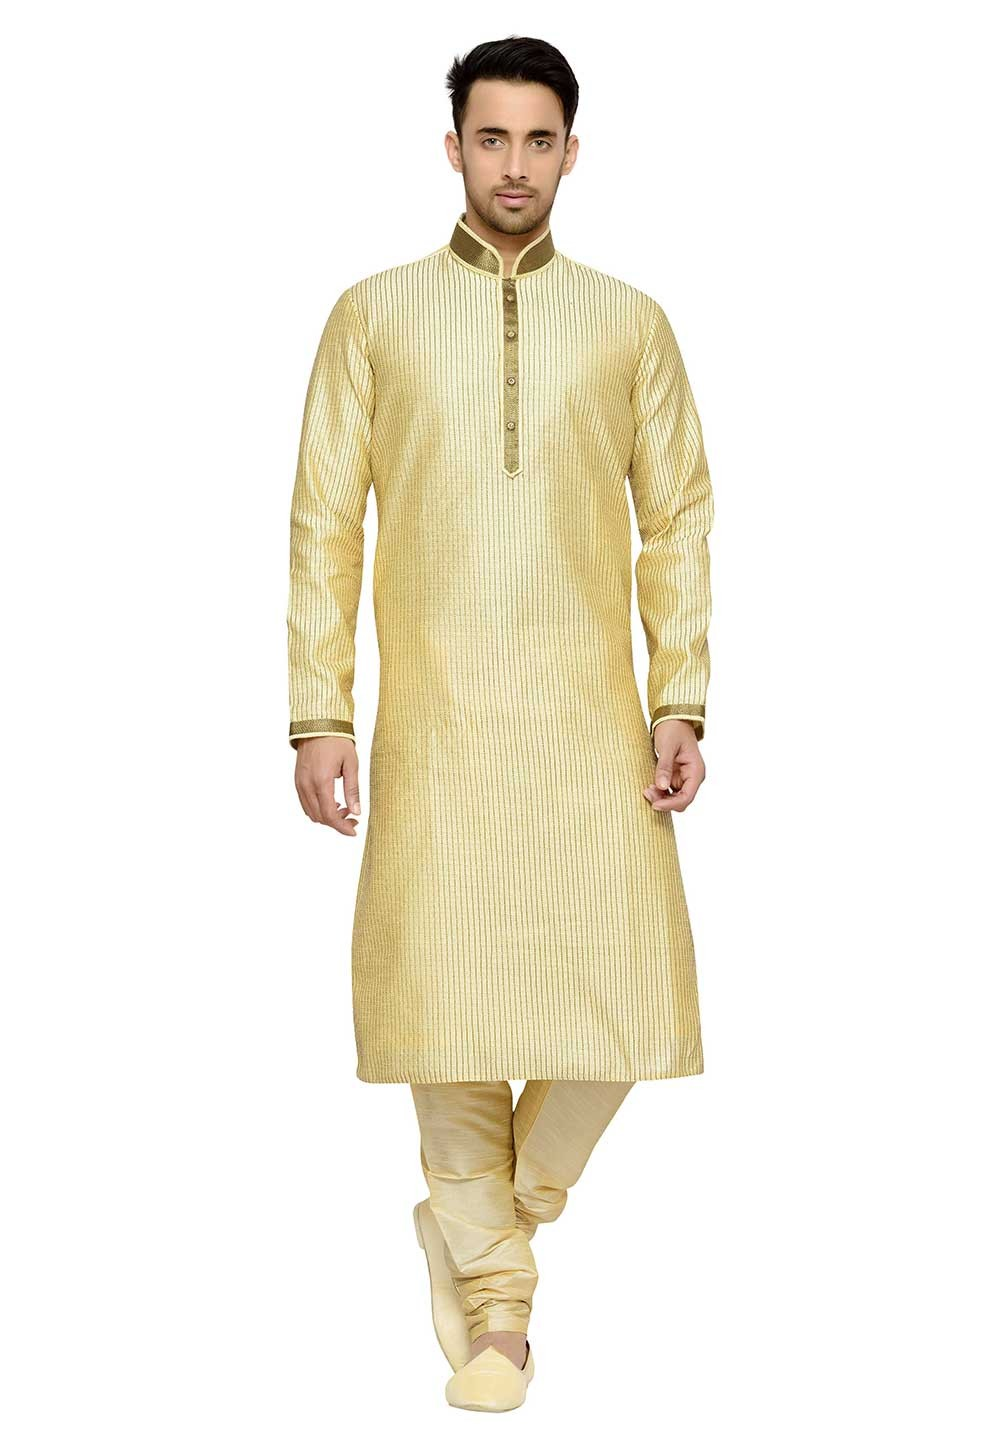 Golden Color Dupion Silk Designer Kurta Pajama With Thread Work.